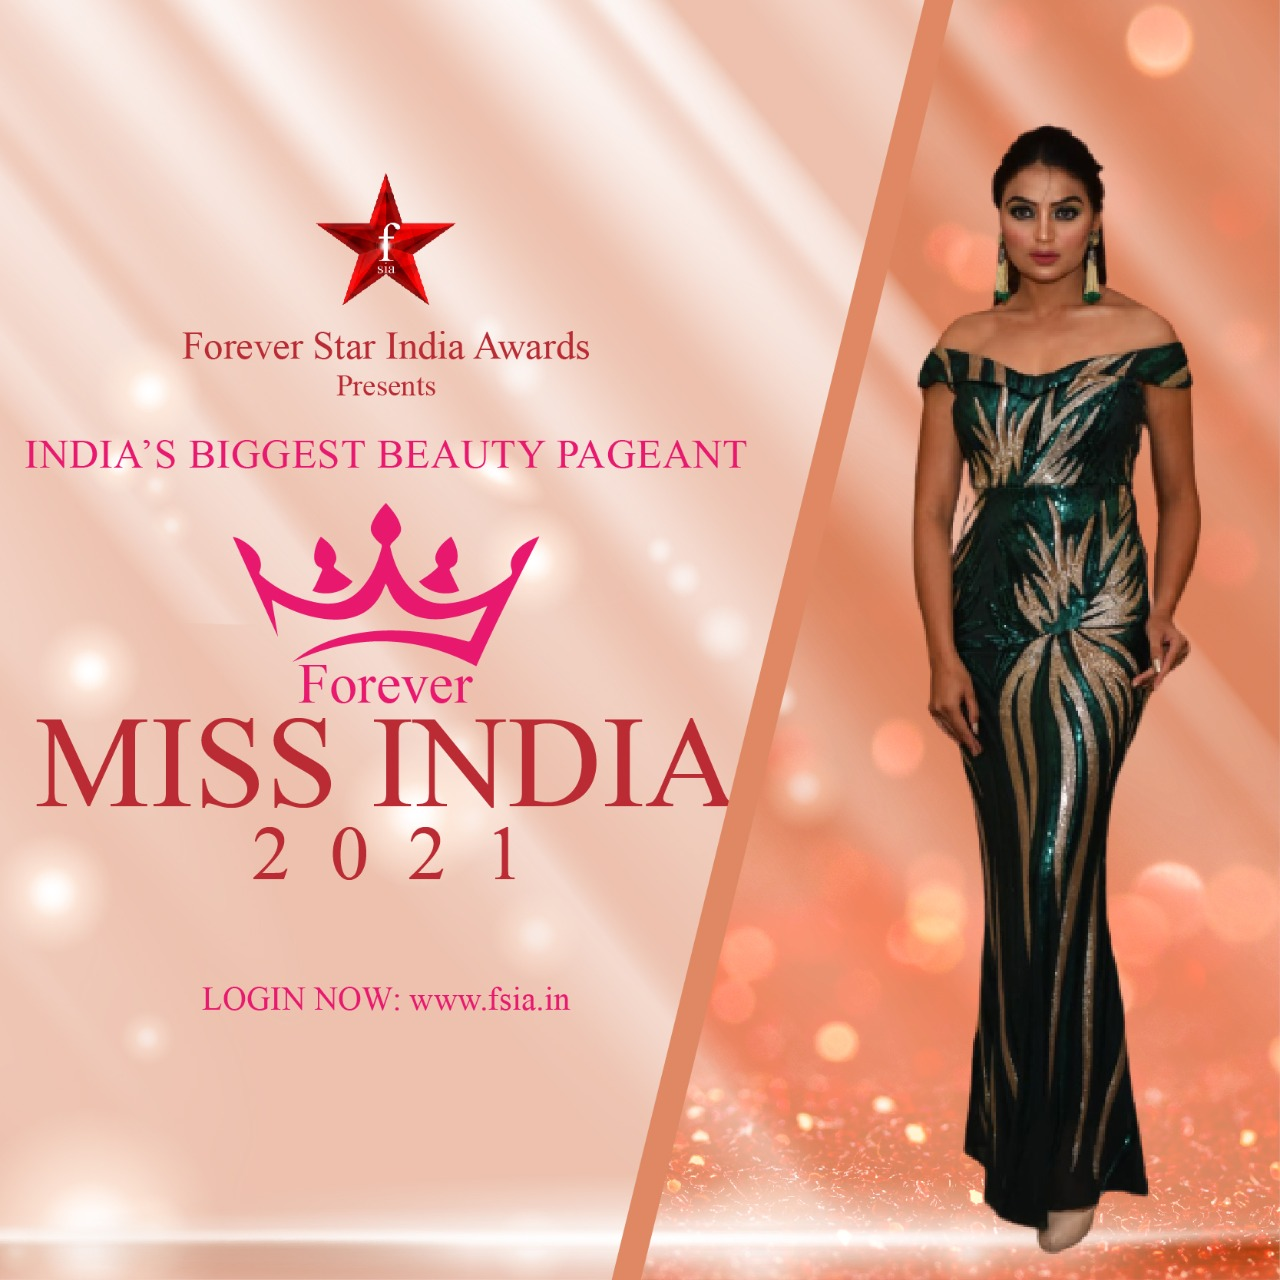 Registrations-of-India's-Most-Unique-Pageant-Forever-Miss-India-2021-Started-on-the-official-website